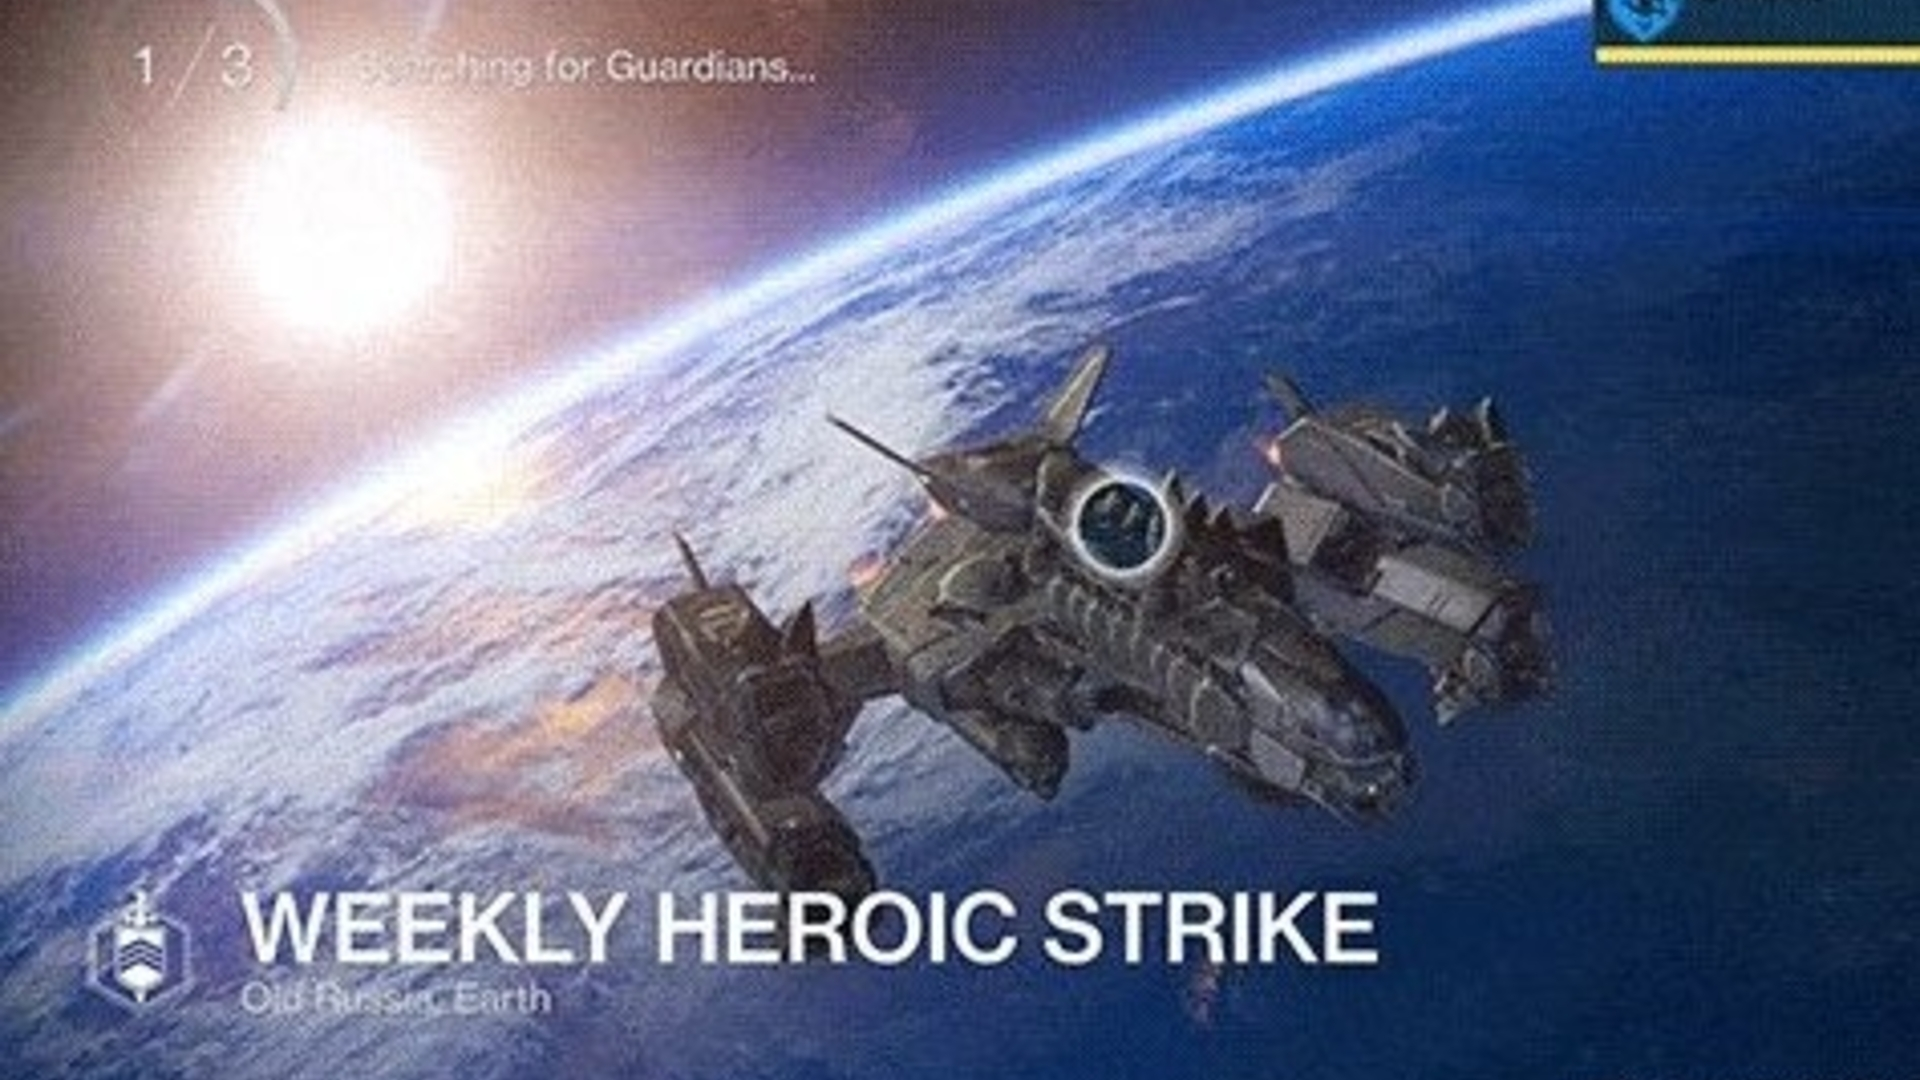 no matchmaking for heroic strikes